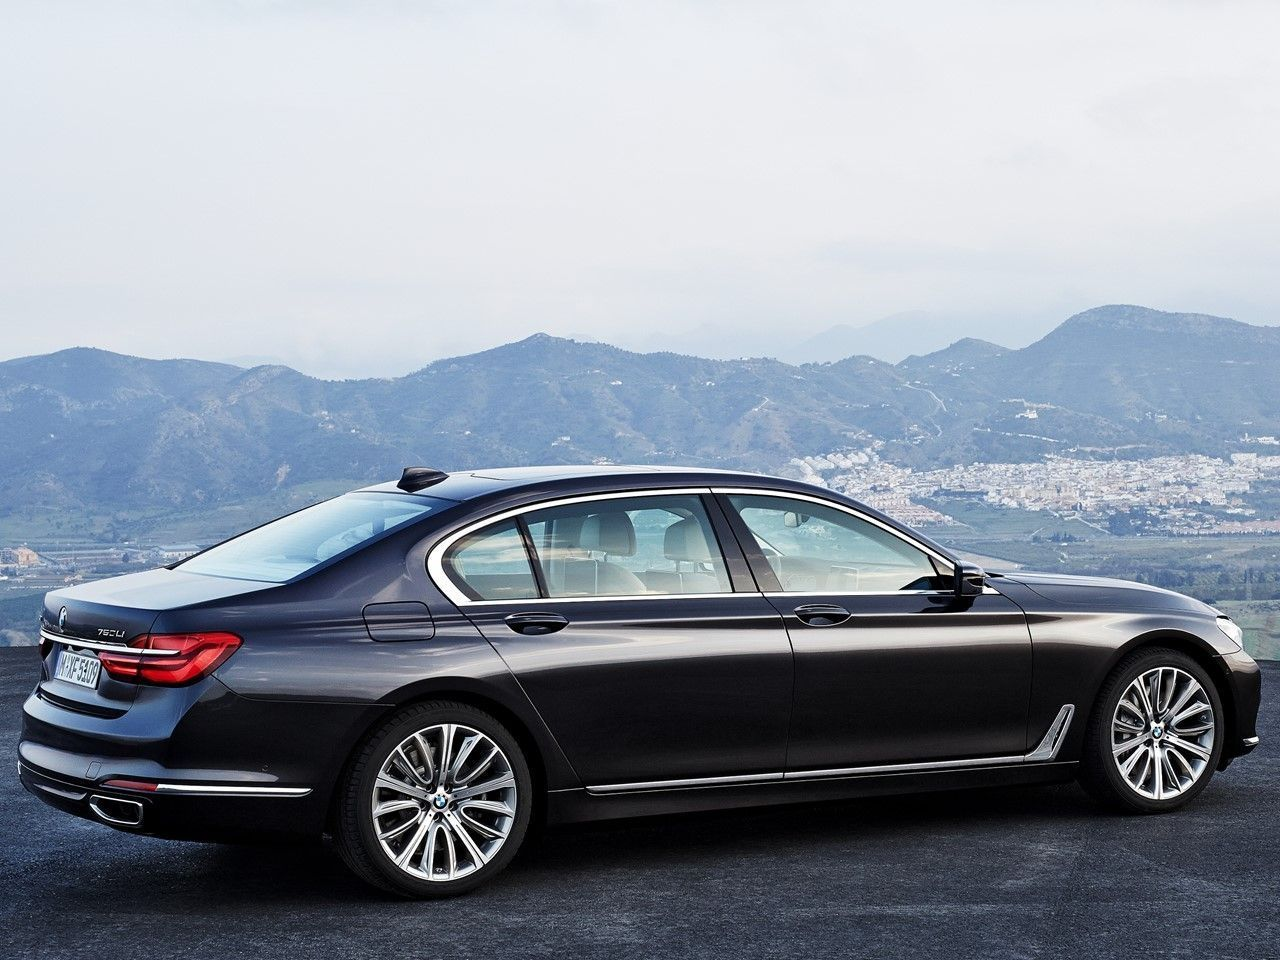 2020 BMW 7 Series Perfection New New Model and Performance